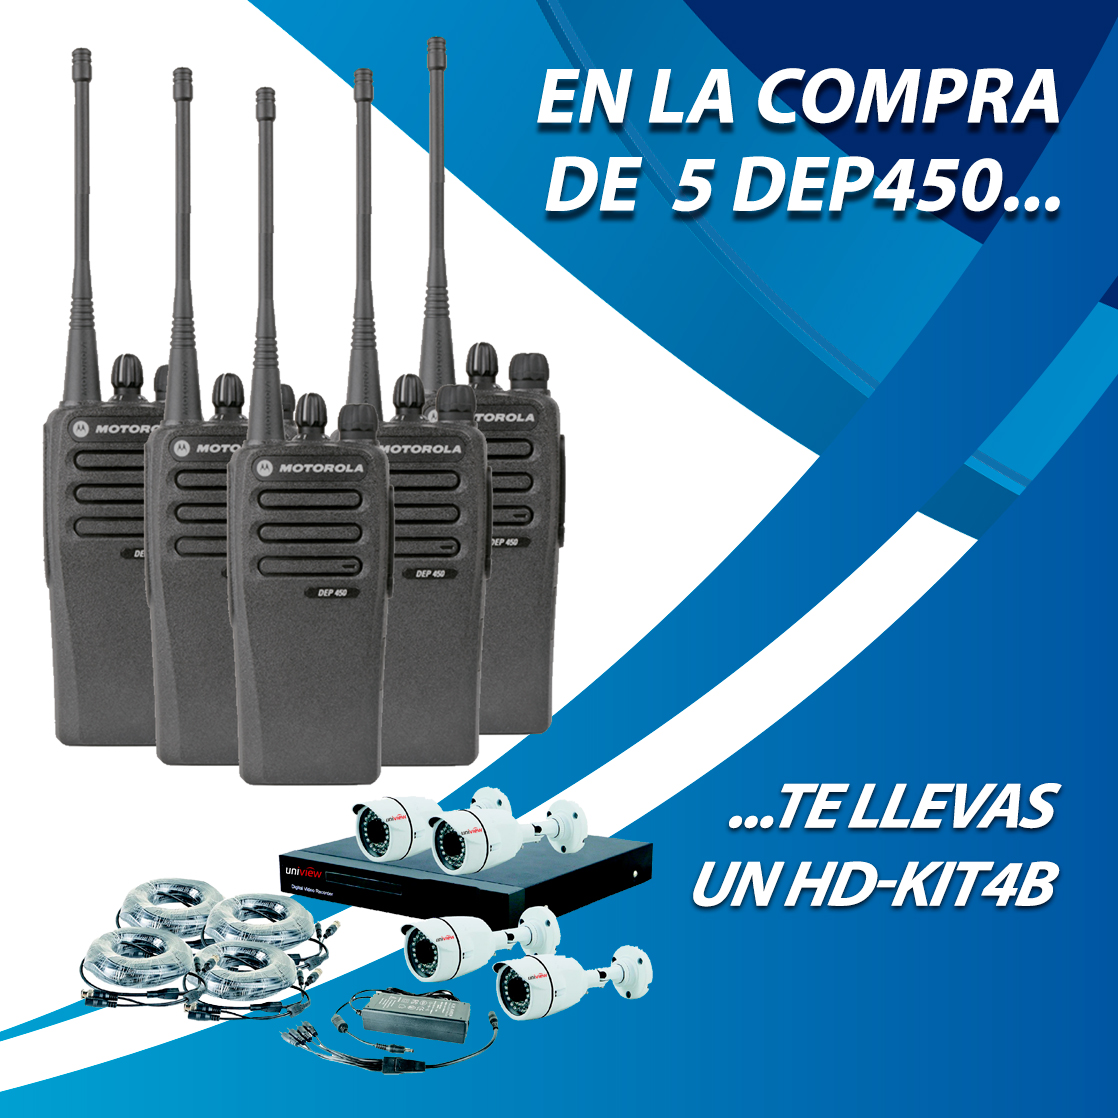 5 DEP450 + HD-KIT4B